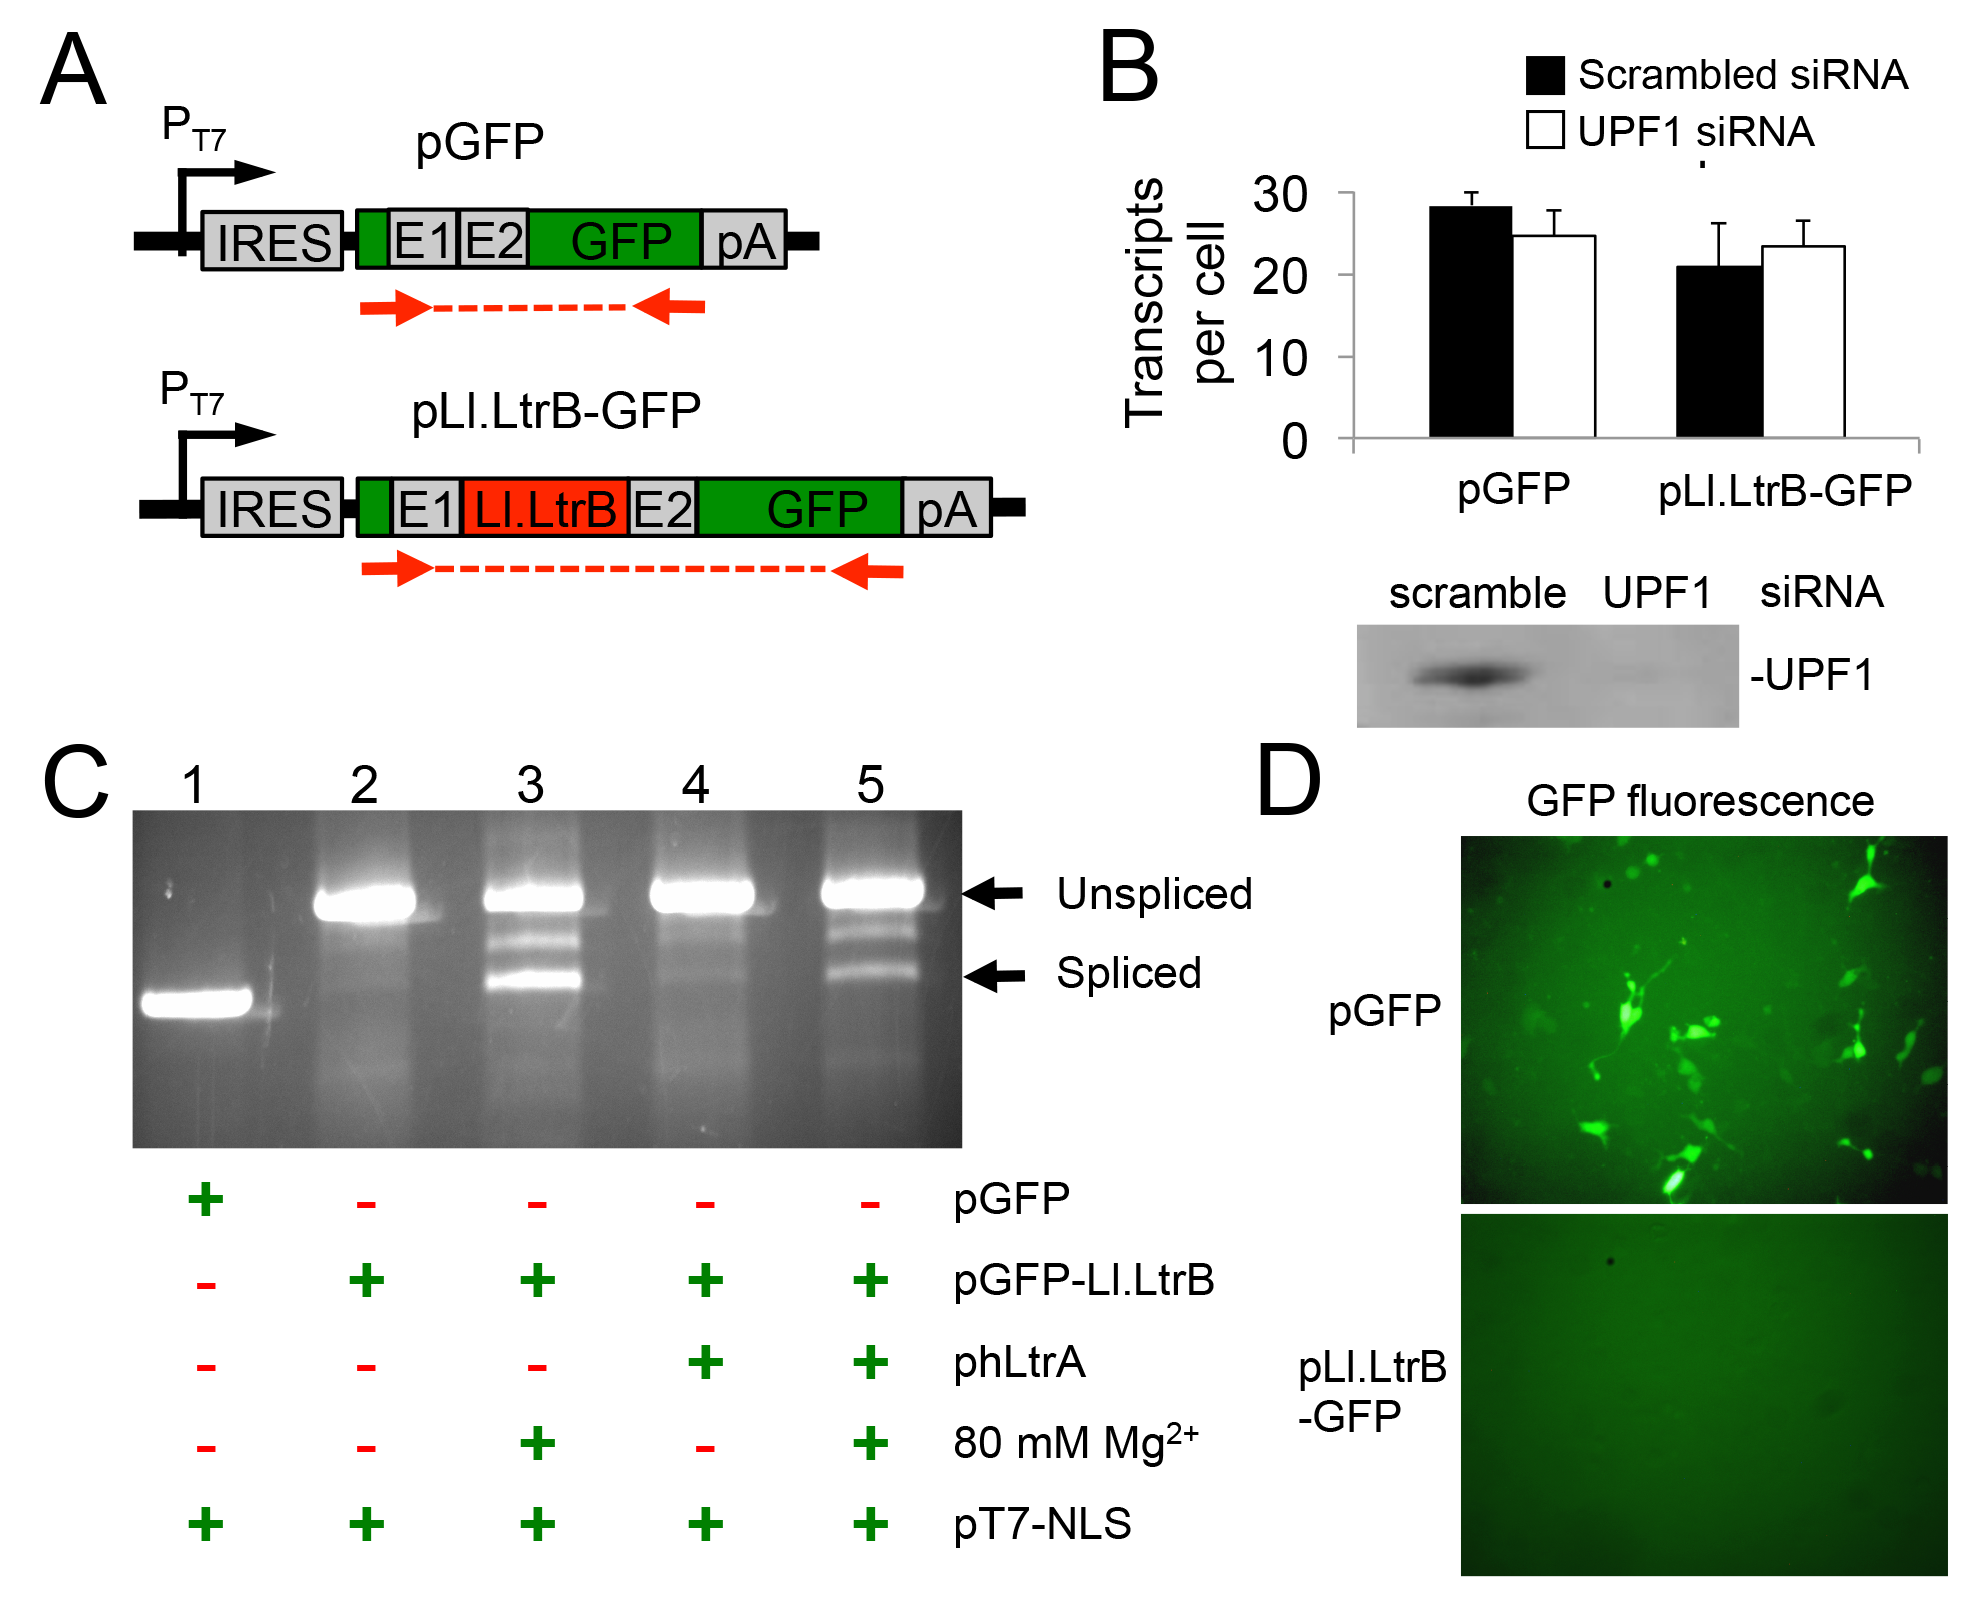 A T7 RNAP transcript containing the Ll.LtrB intron is not degraded by nonsense mediated decay in human cells and can be spliced after addition of Mg<sup>2+</sup> to the cell culture medium.